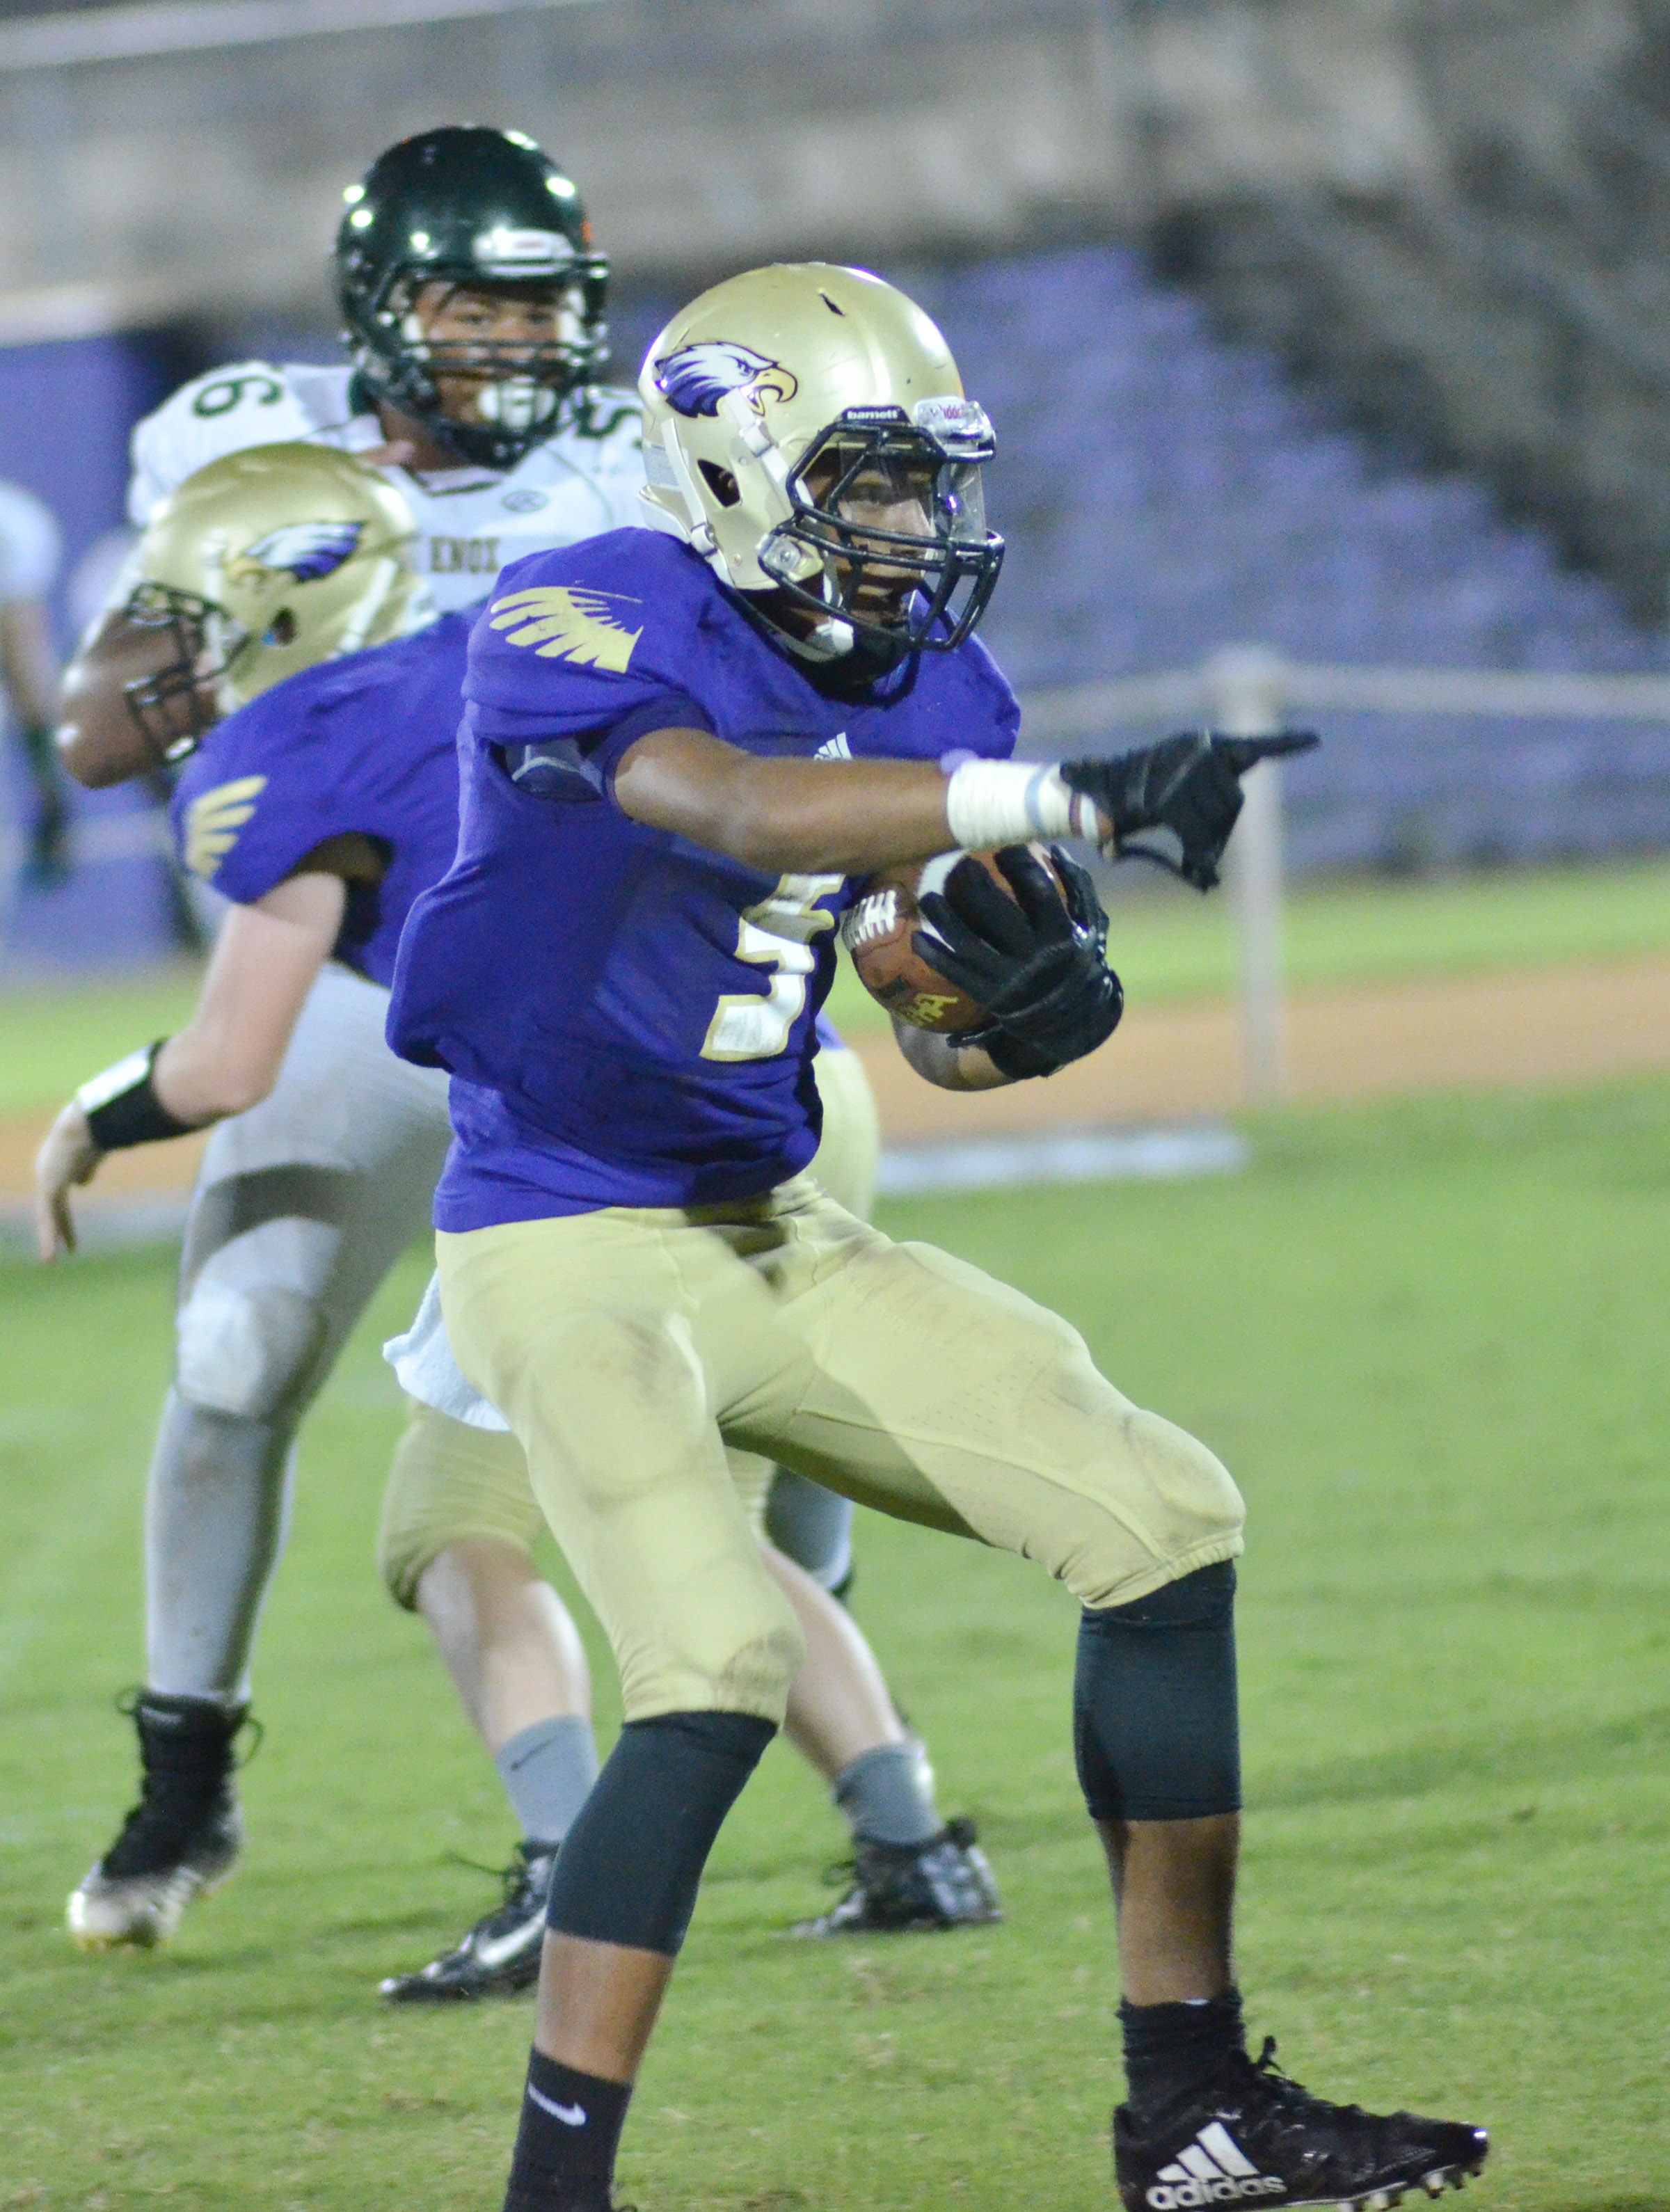 CHS freshman Reggie Thomas runs the ball.